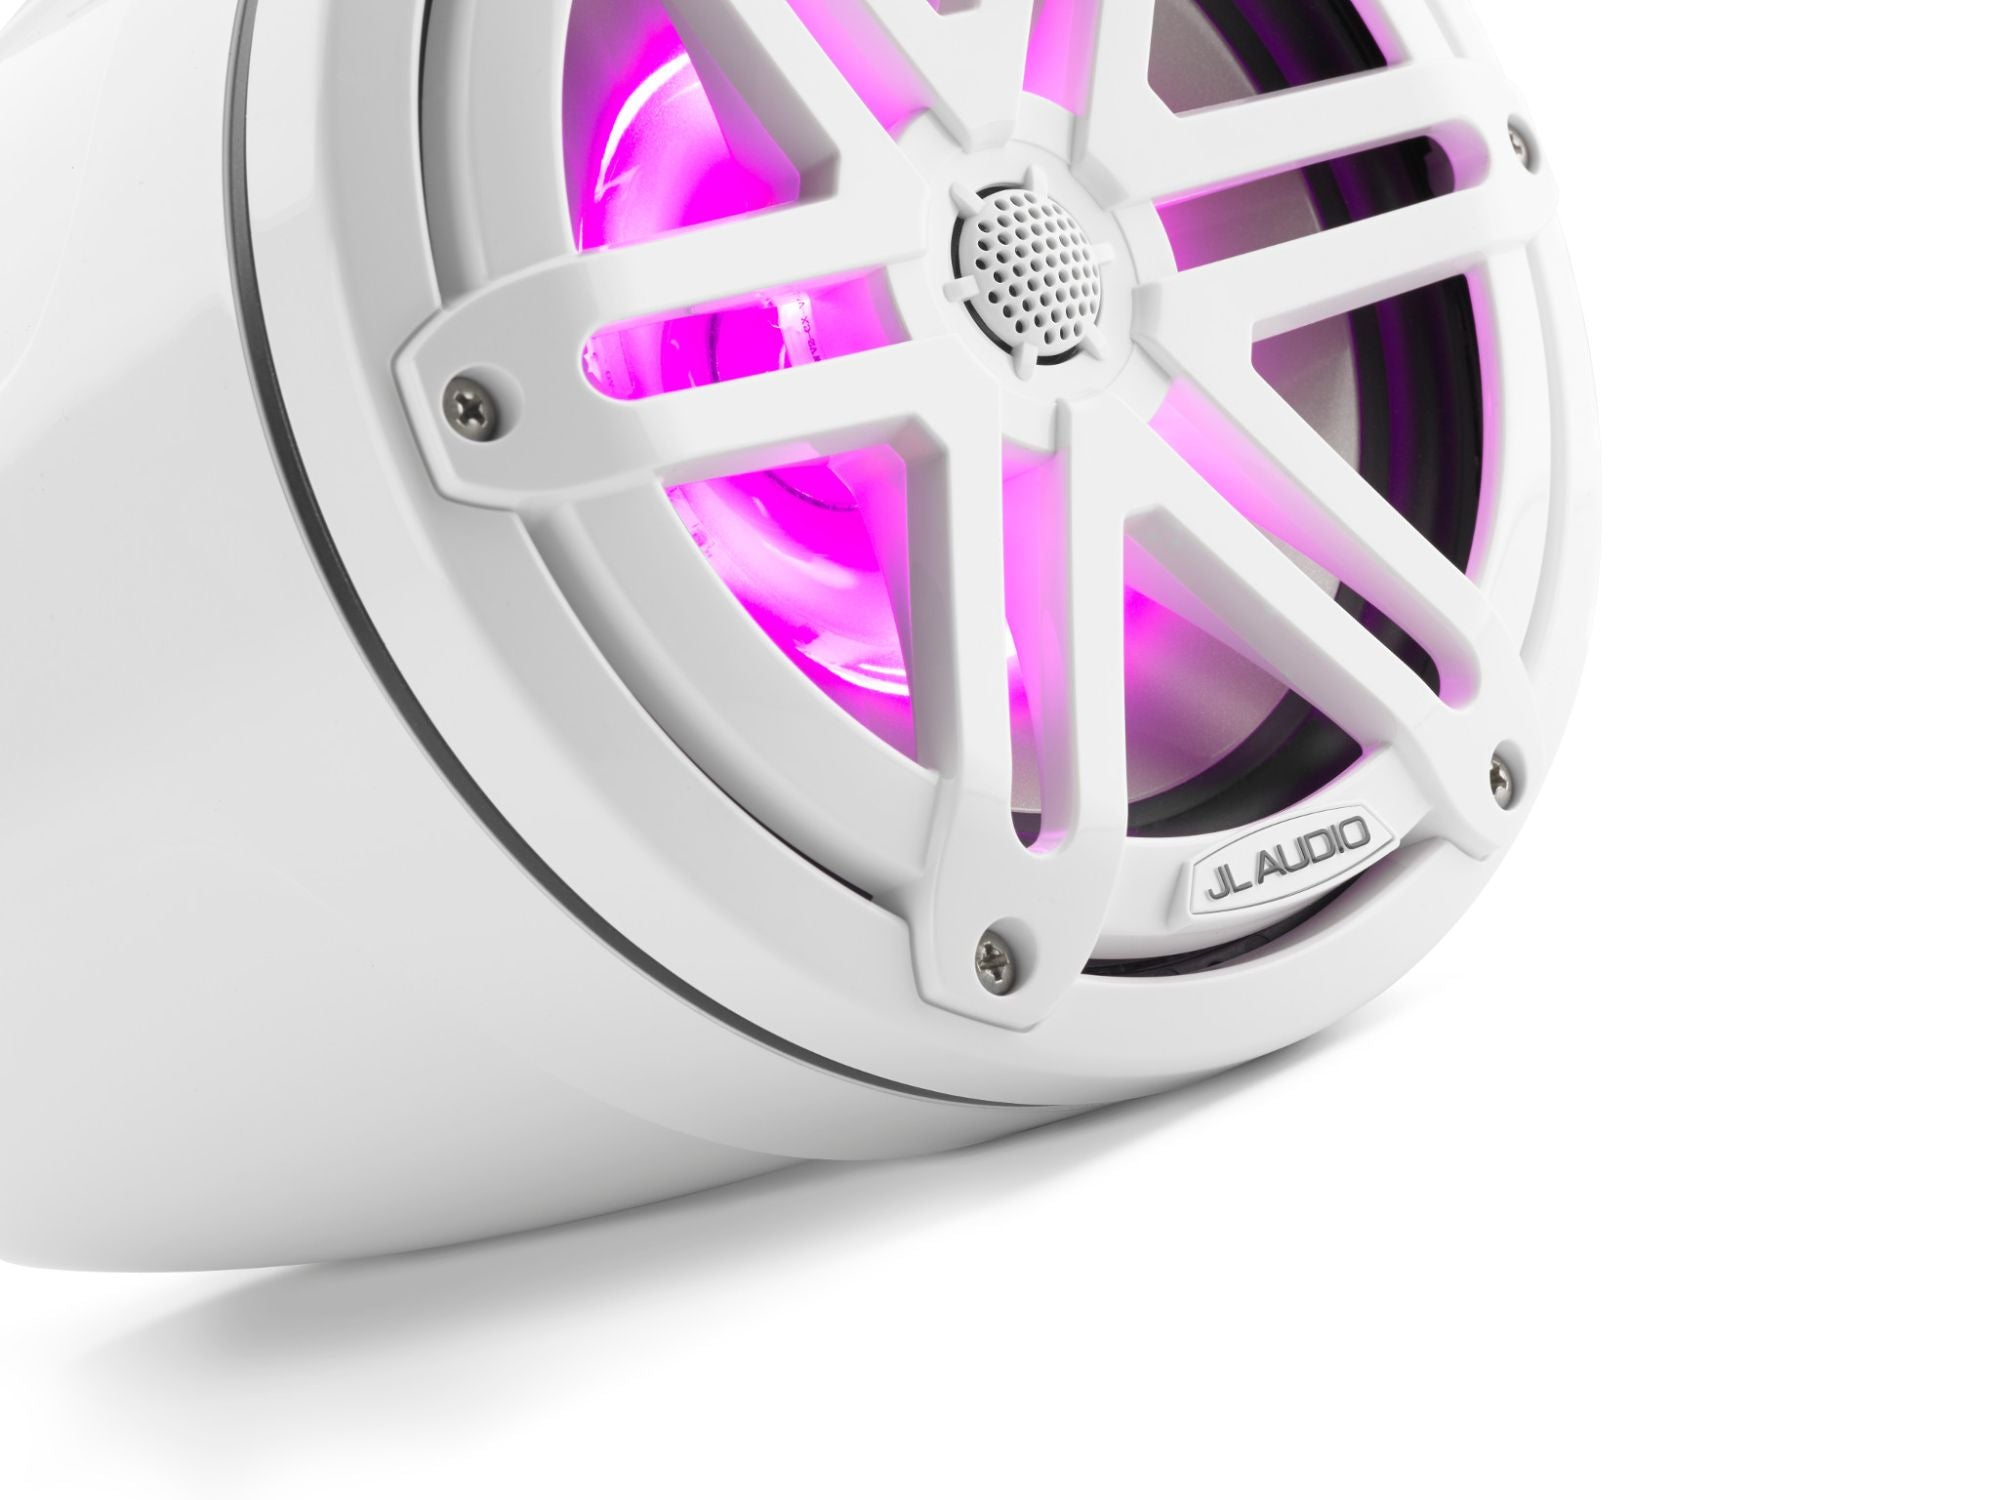 Detail of M3-770ETXv3-Gw-S-Gw-i Enclosed Speaker Lit with Pink